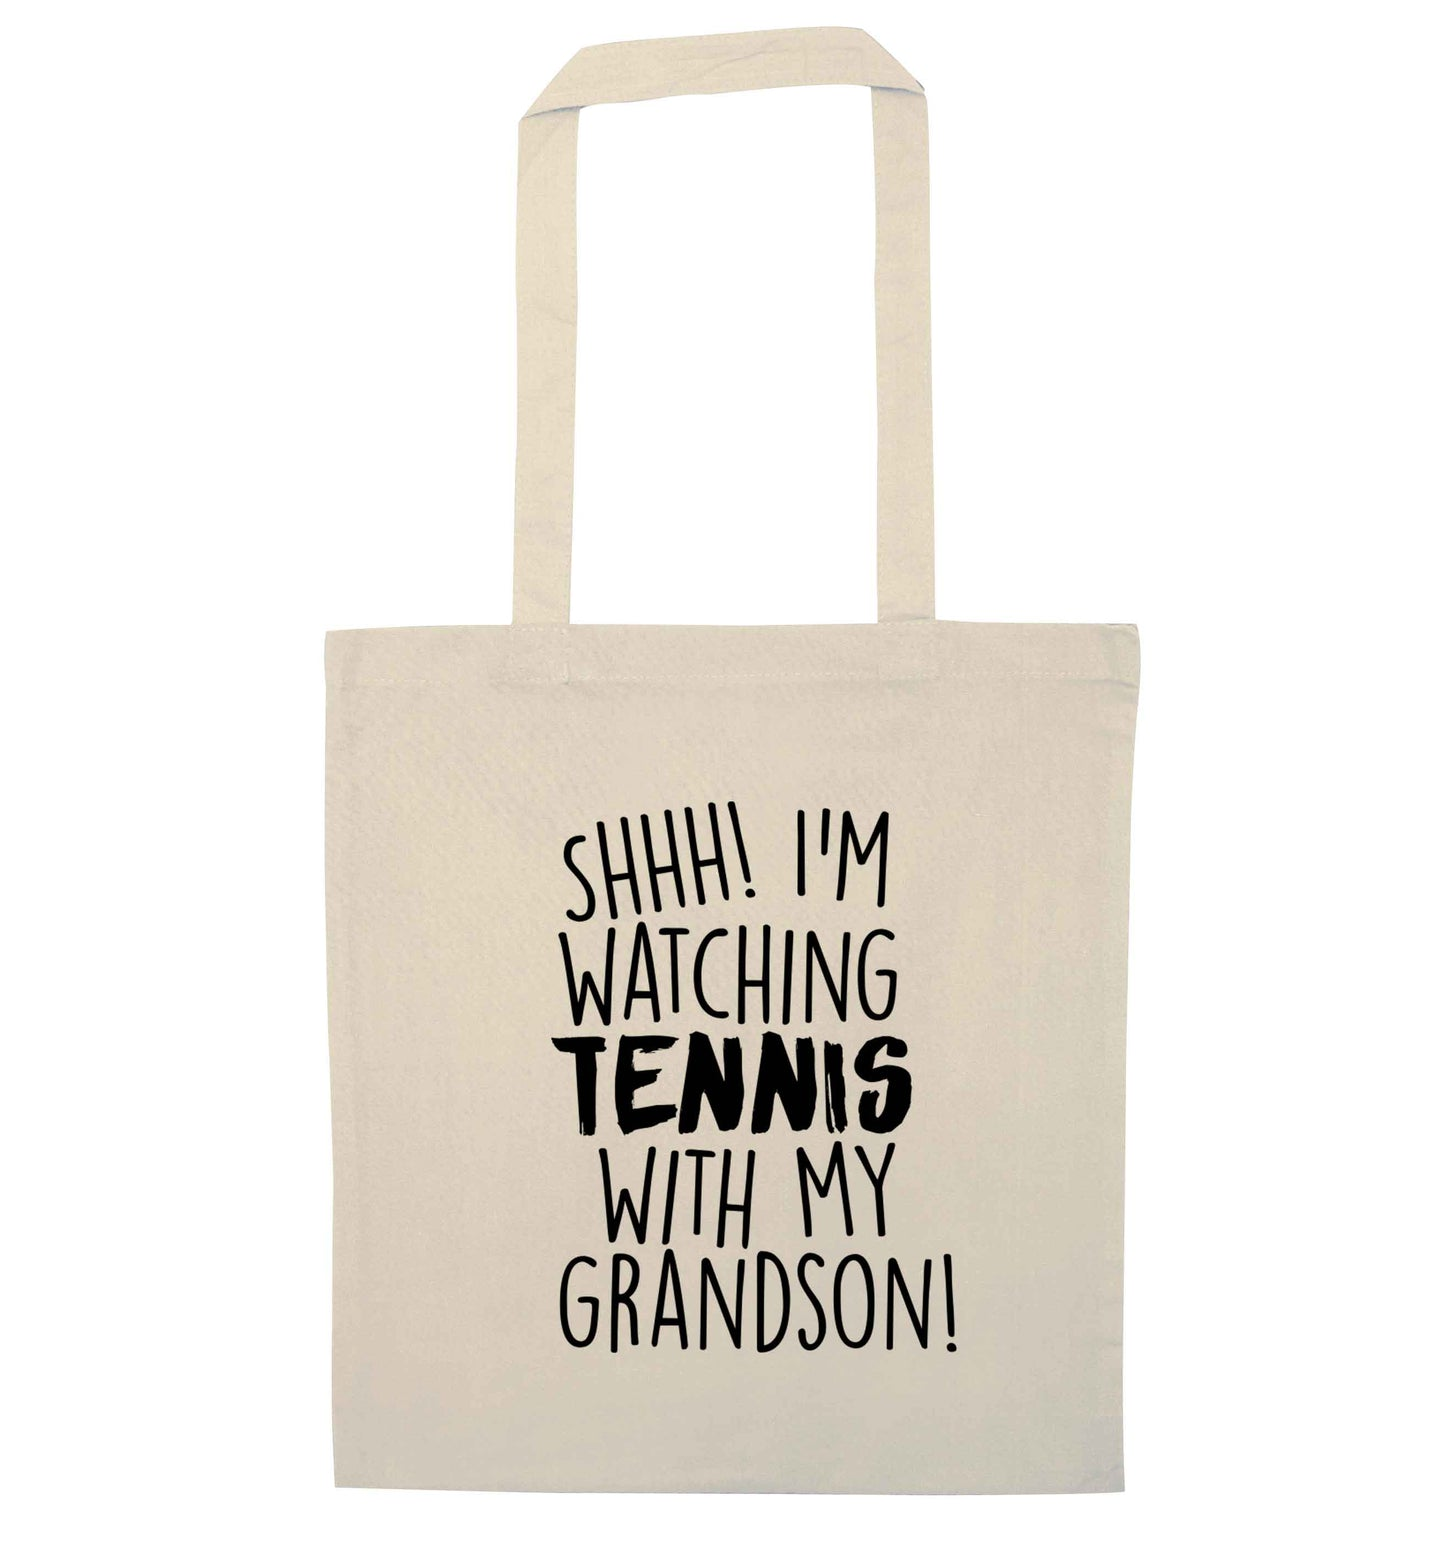 Shh! I'm watching tennis with my grandson! natural tote bag